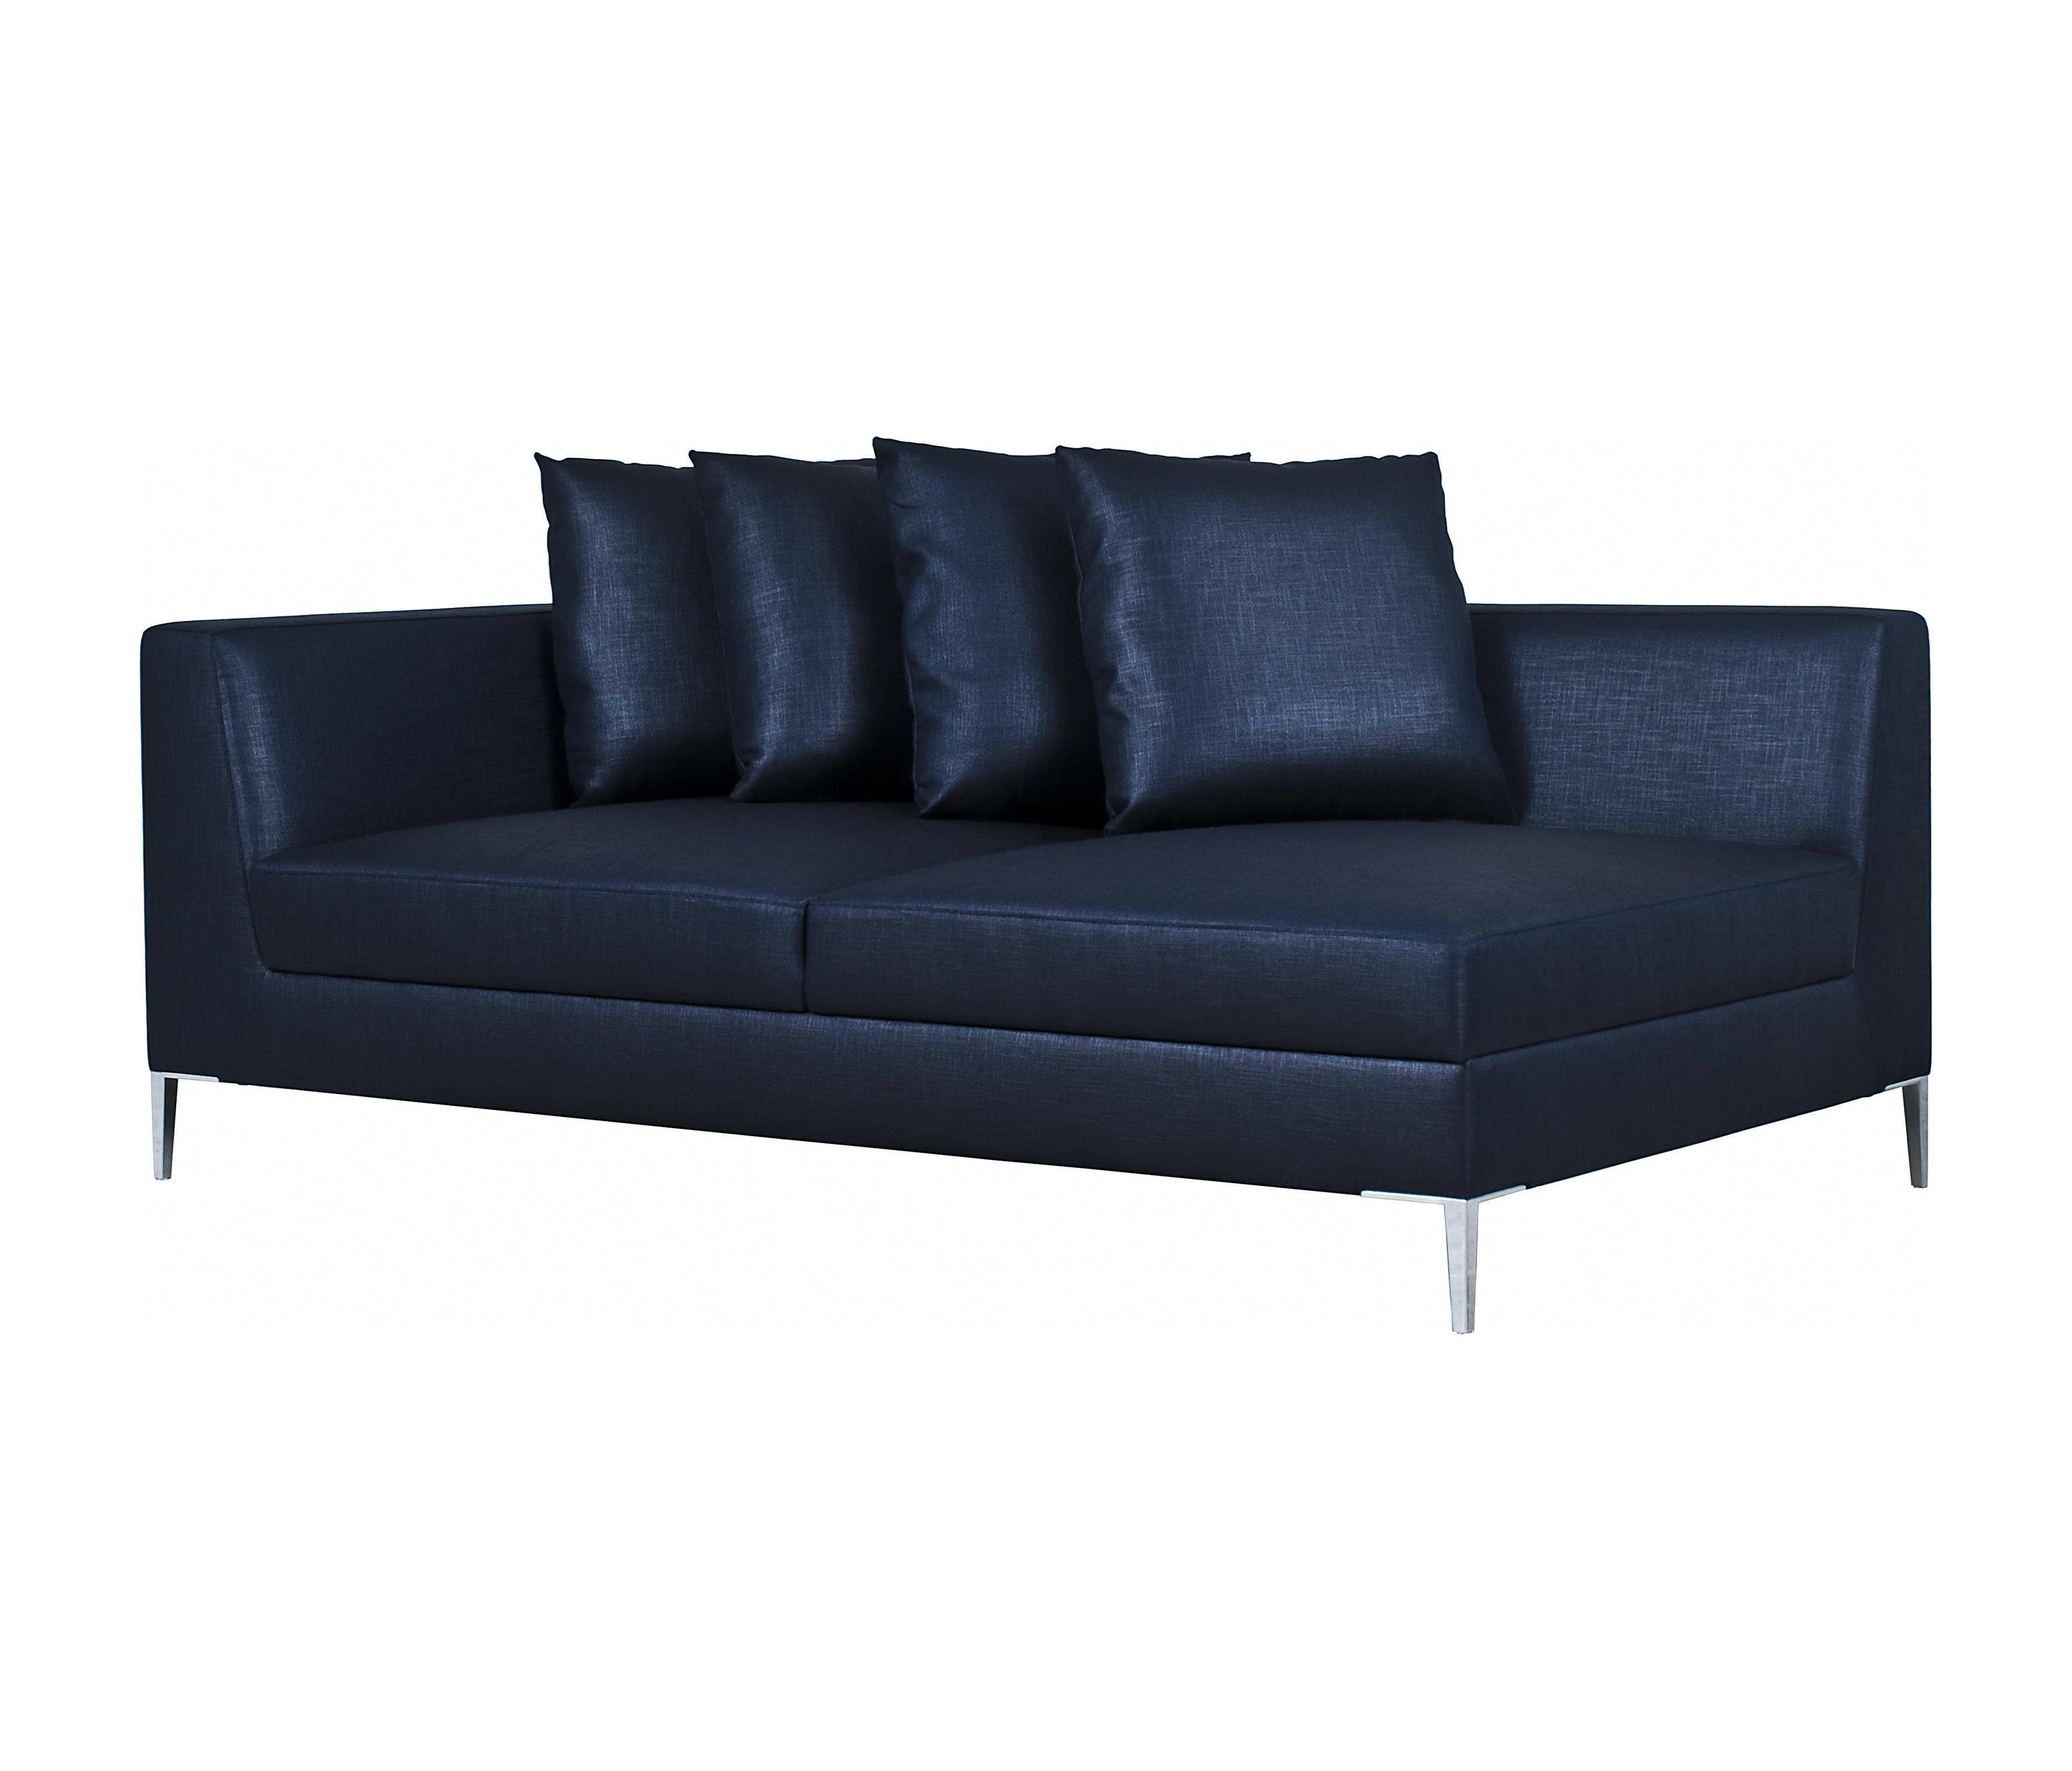 Jean-Louis 2seater single arm sofa by Time & Style | Sofas ...